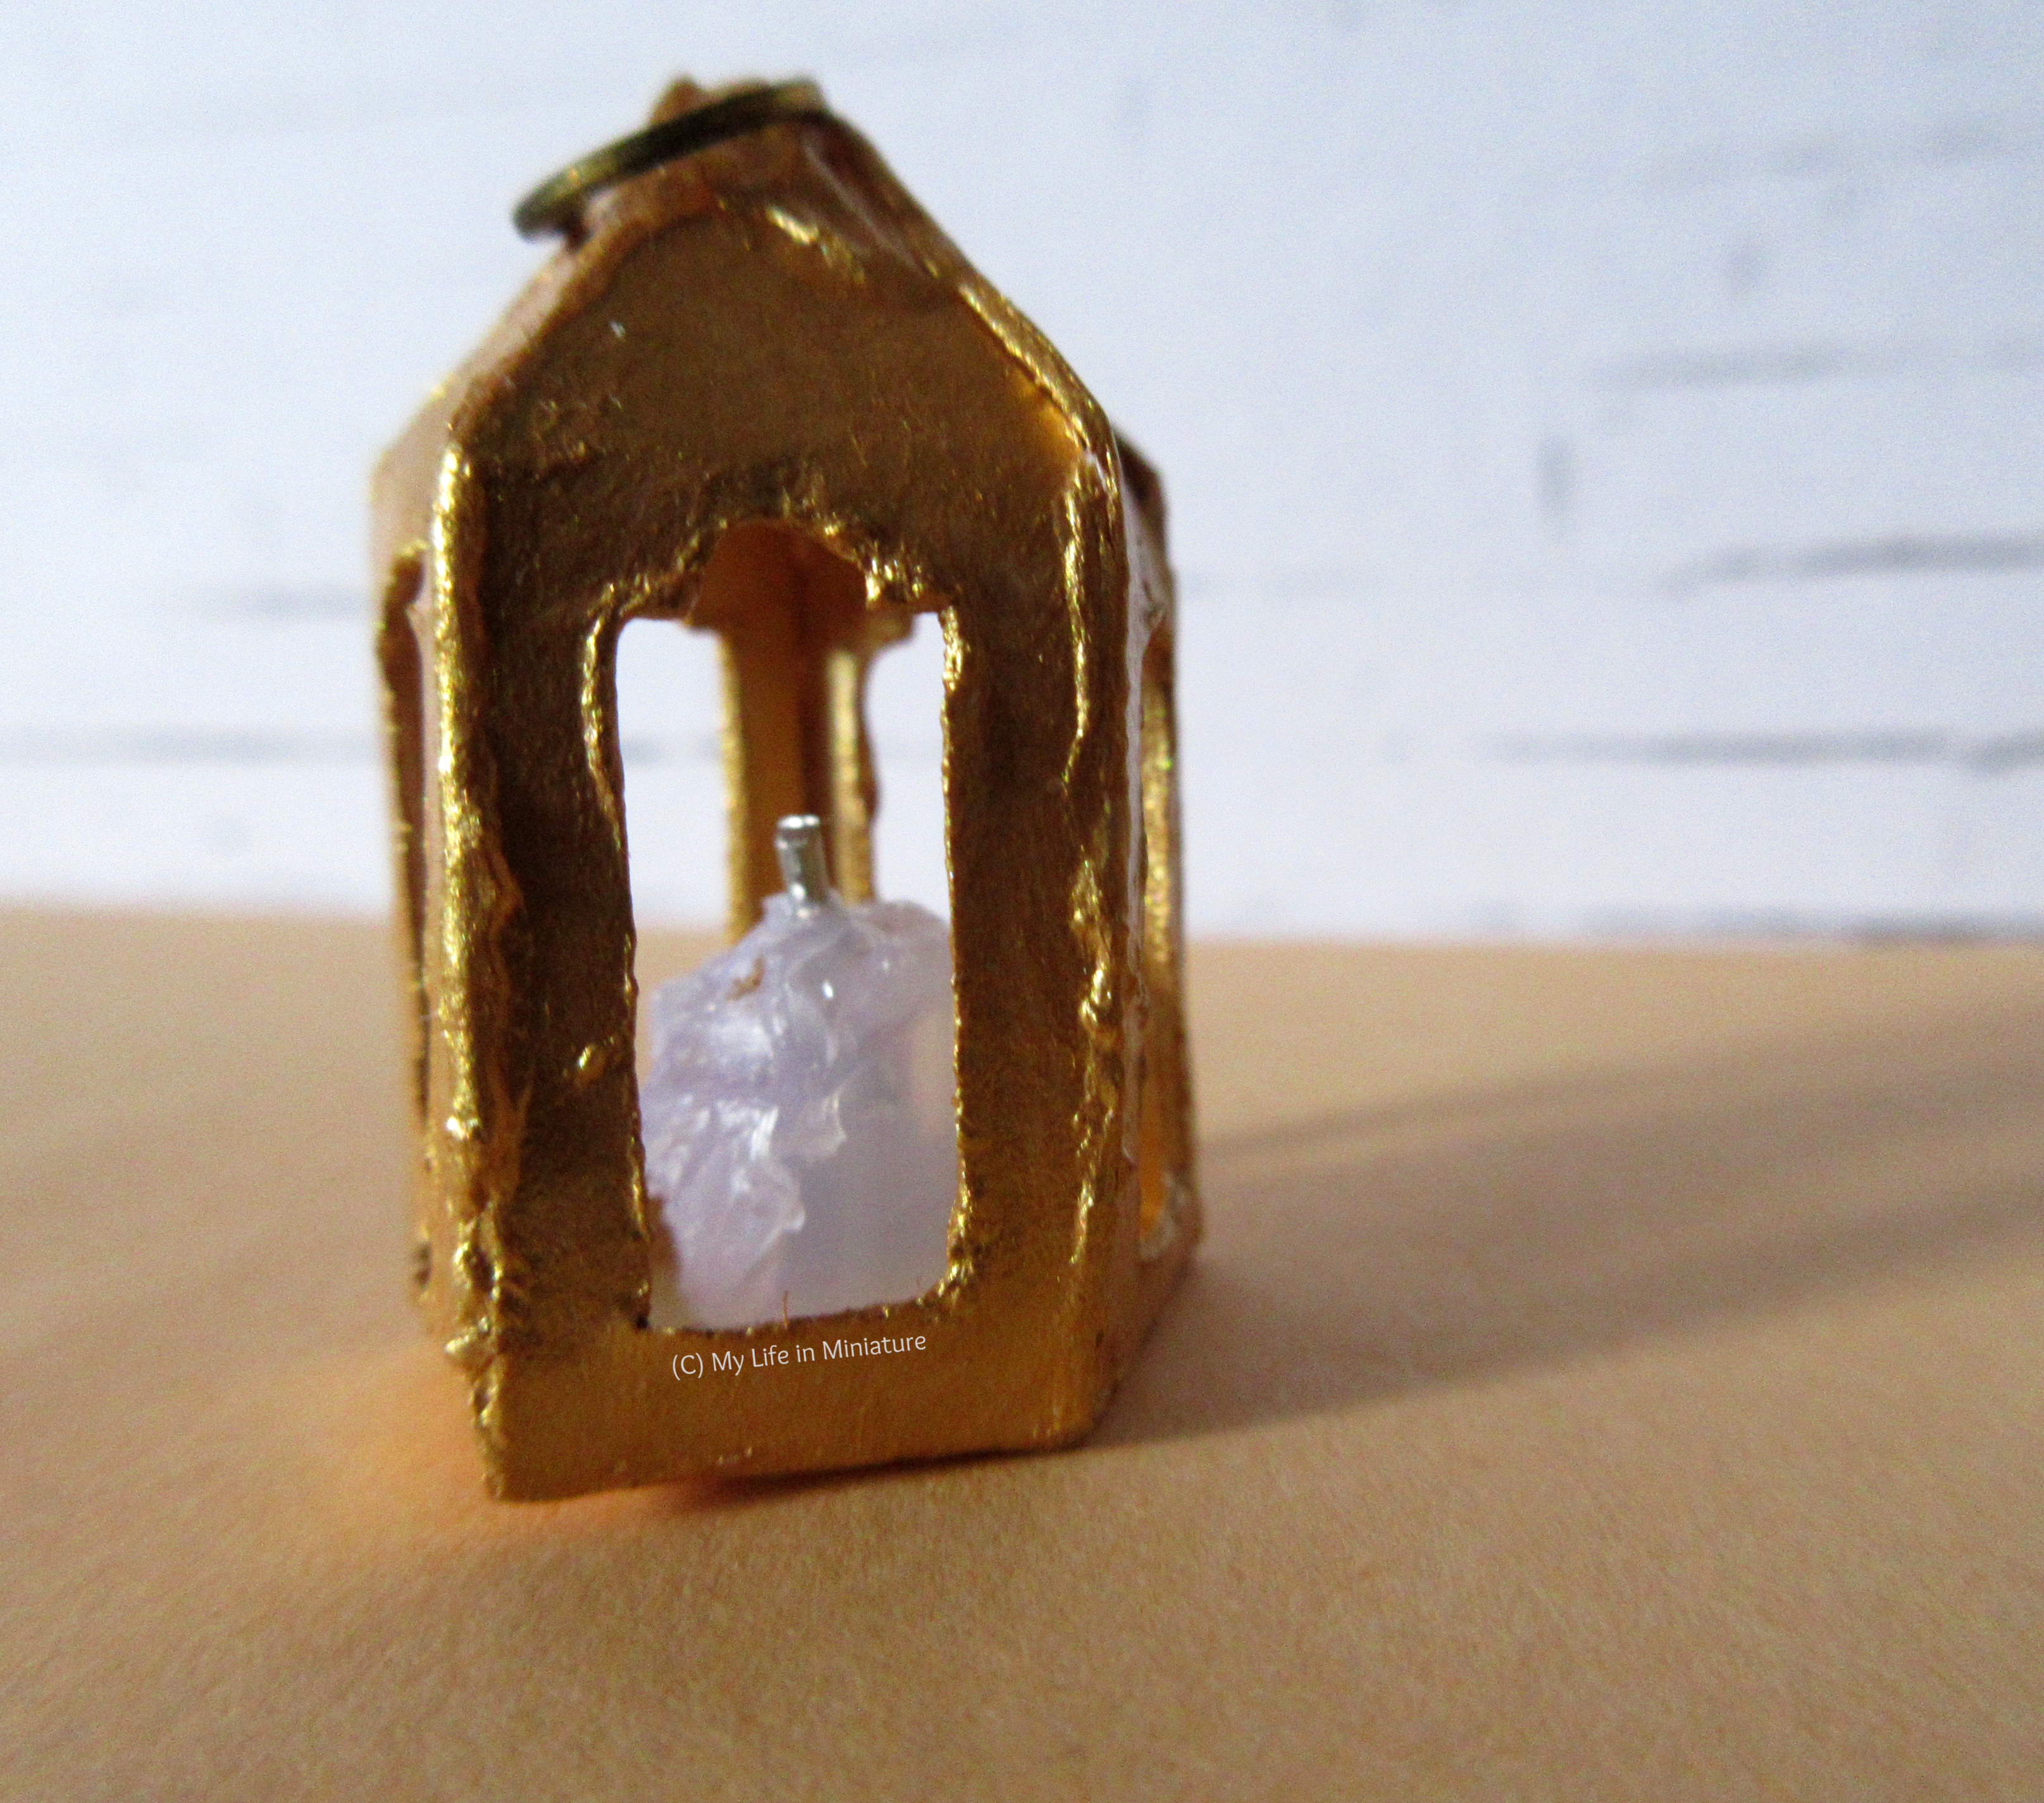 Close-up of the pentagonal lantern's candle, through one of the windows in the side.